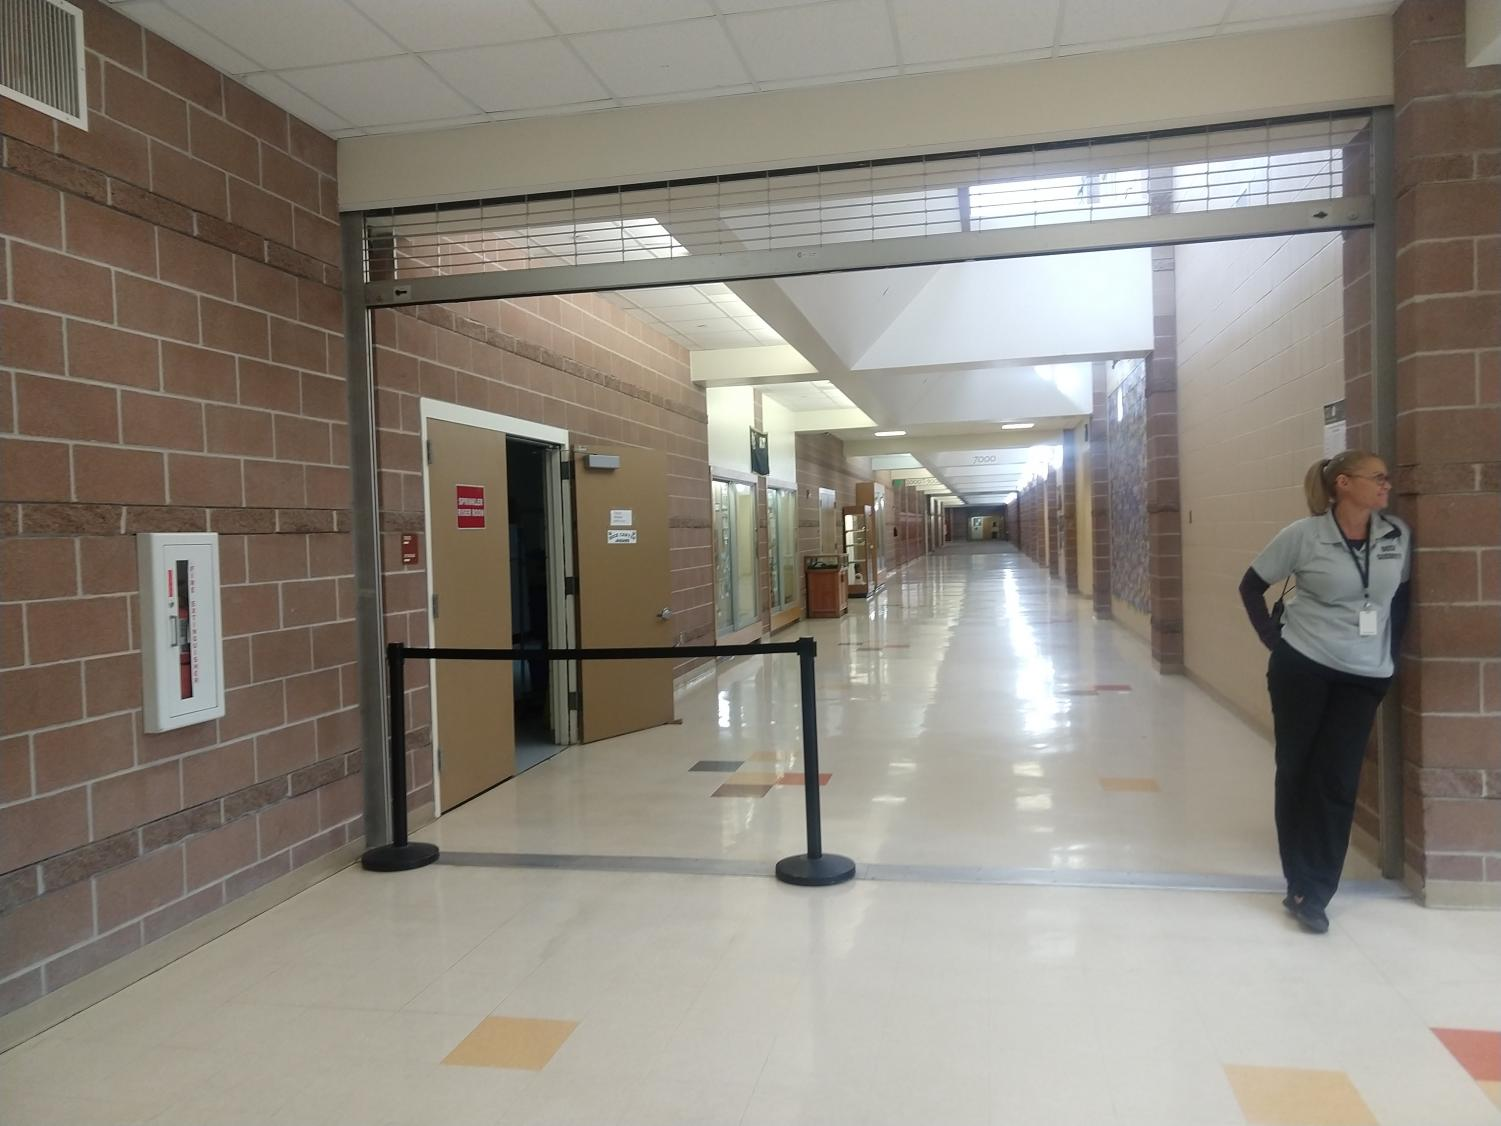 Security Guard Melinda Schulz guarding the hallways from Students. Jan. 9.